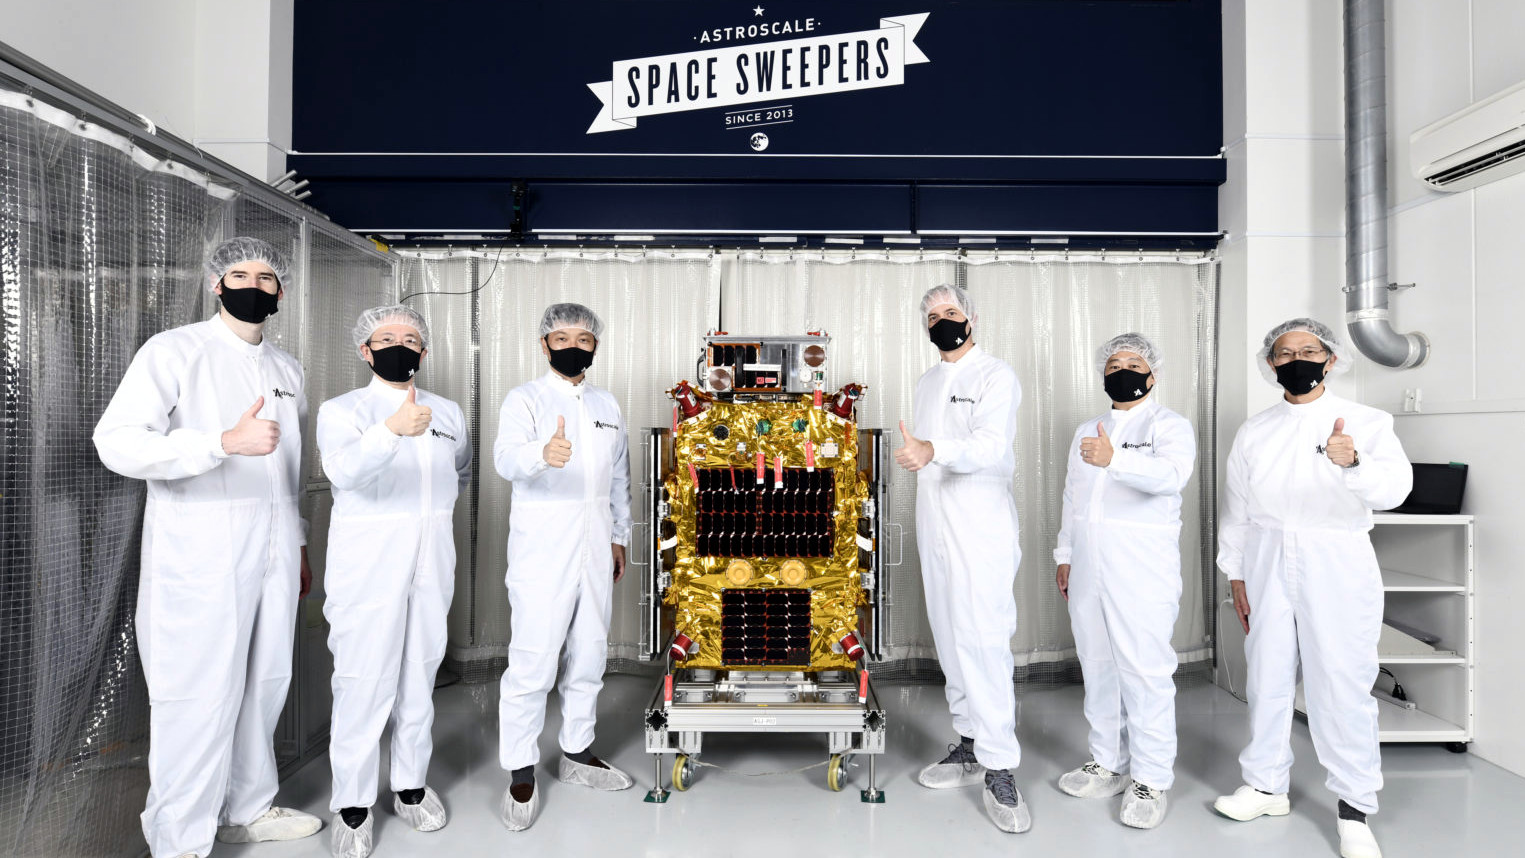 Astroscale execs pose with ELSA-d, the spacecraft that will validate their business.